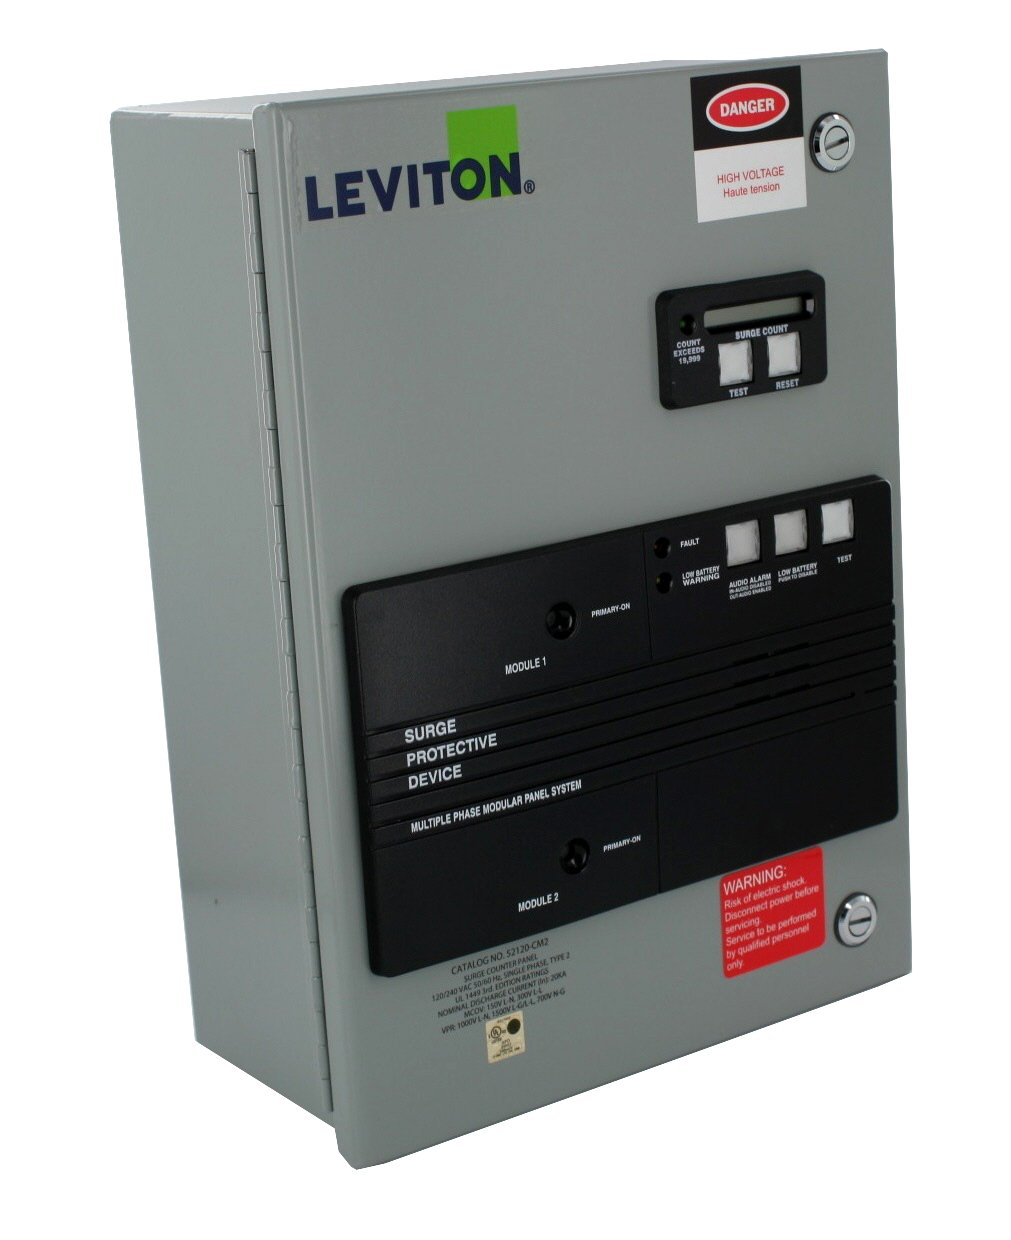 Wiring diagram for leviton surge protection switch